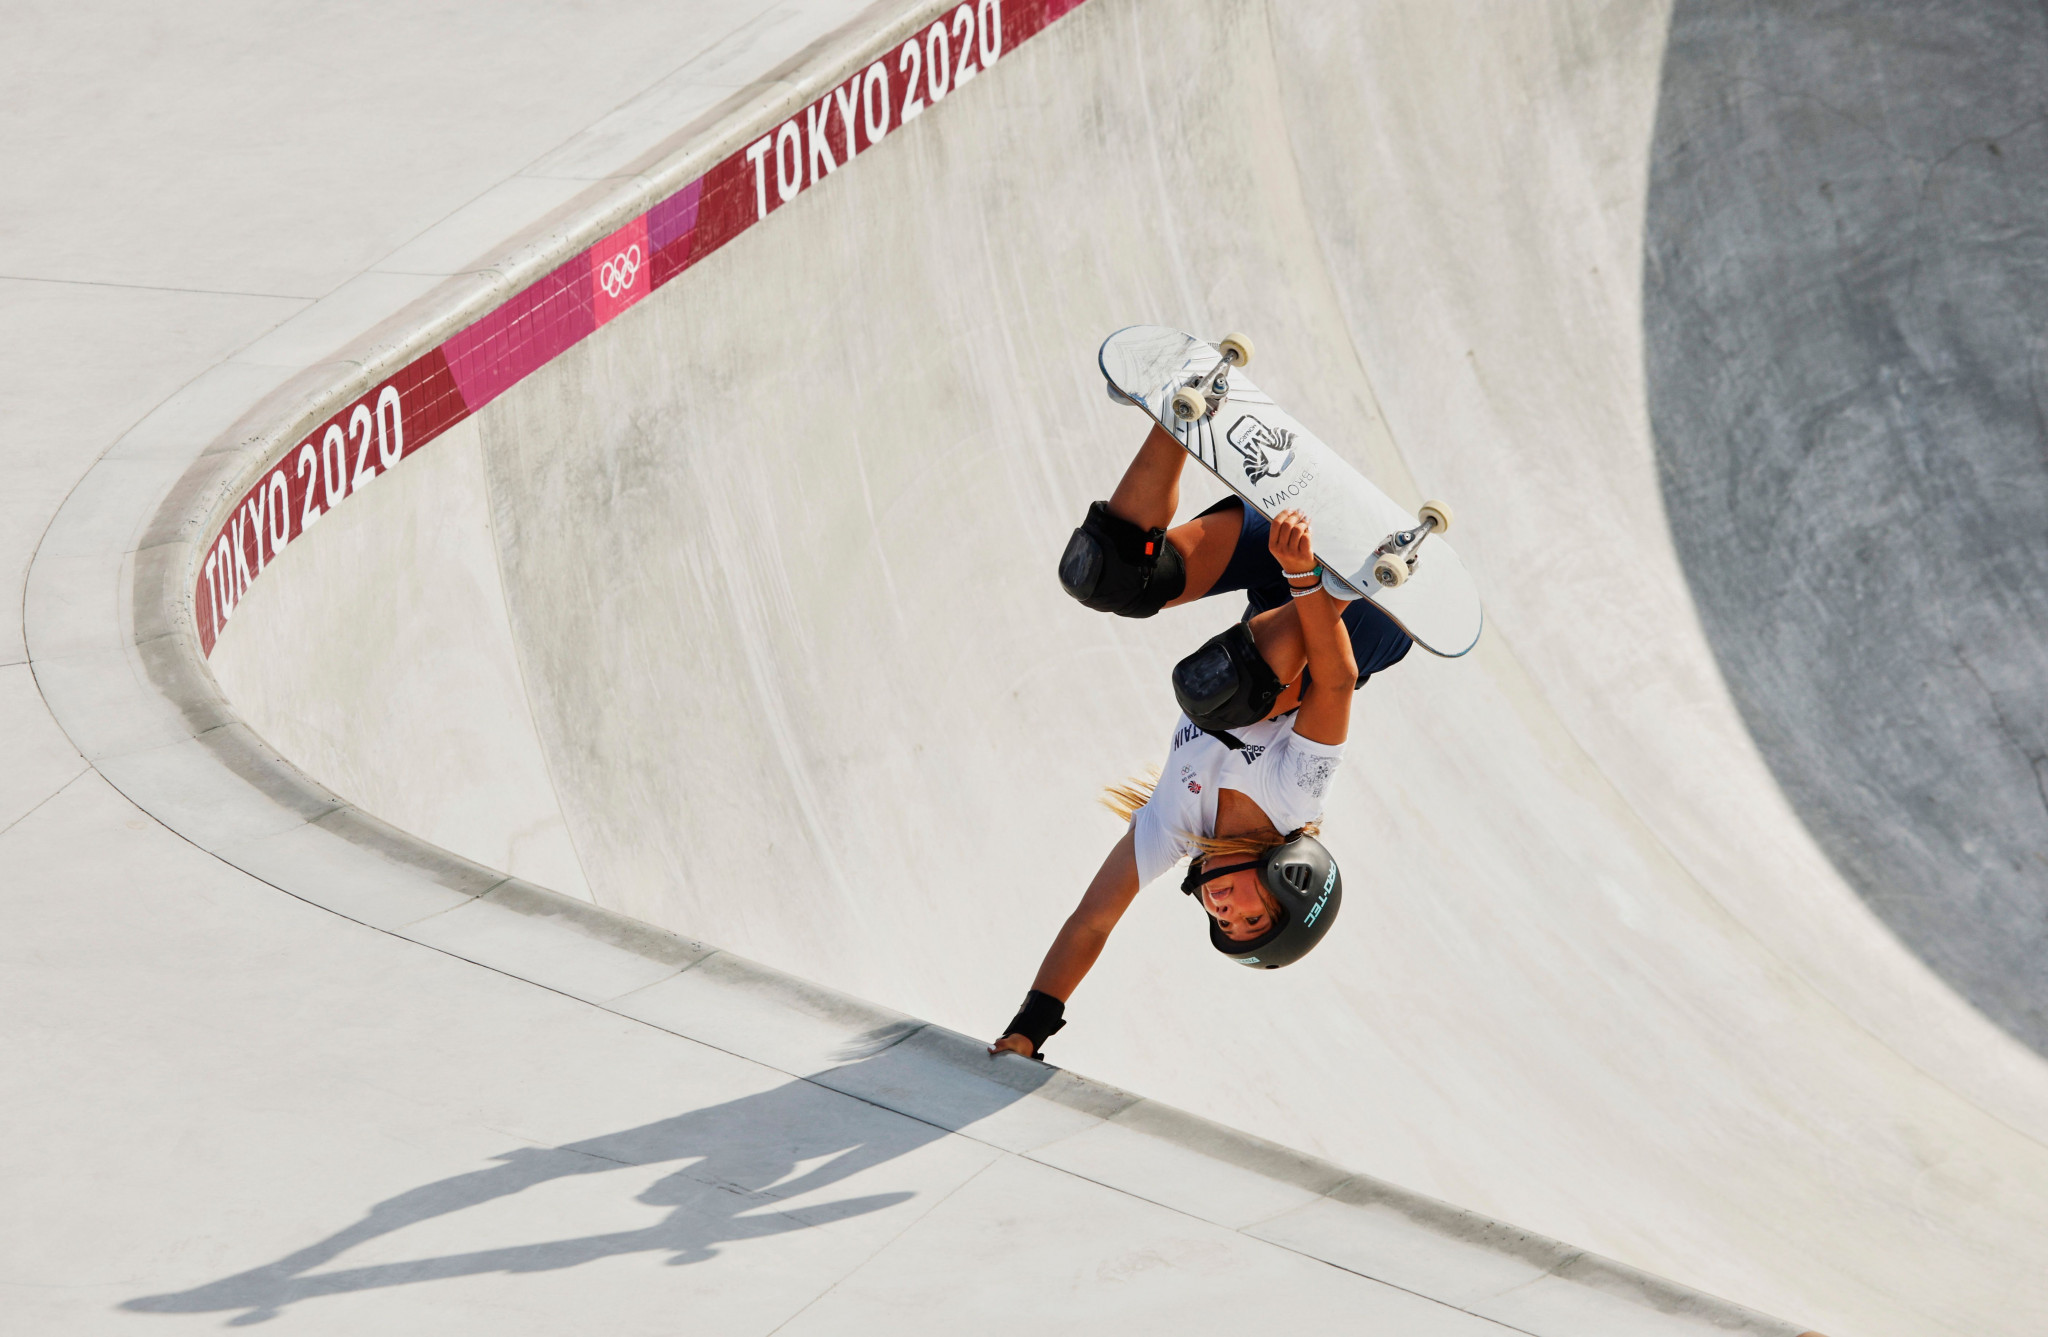 Skateboarding was a hit at Tokyo 2020 and ticked the youthful box ©Getty Images